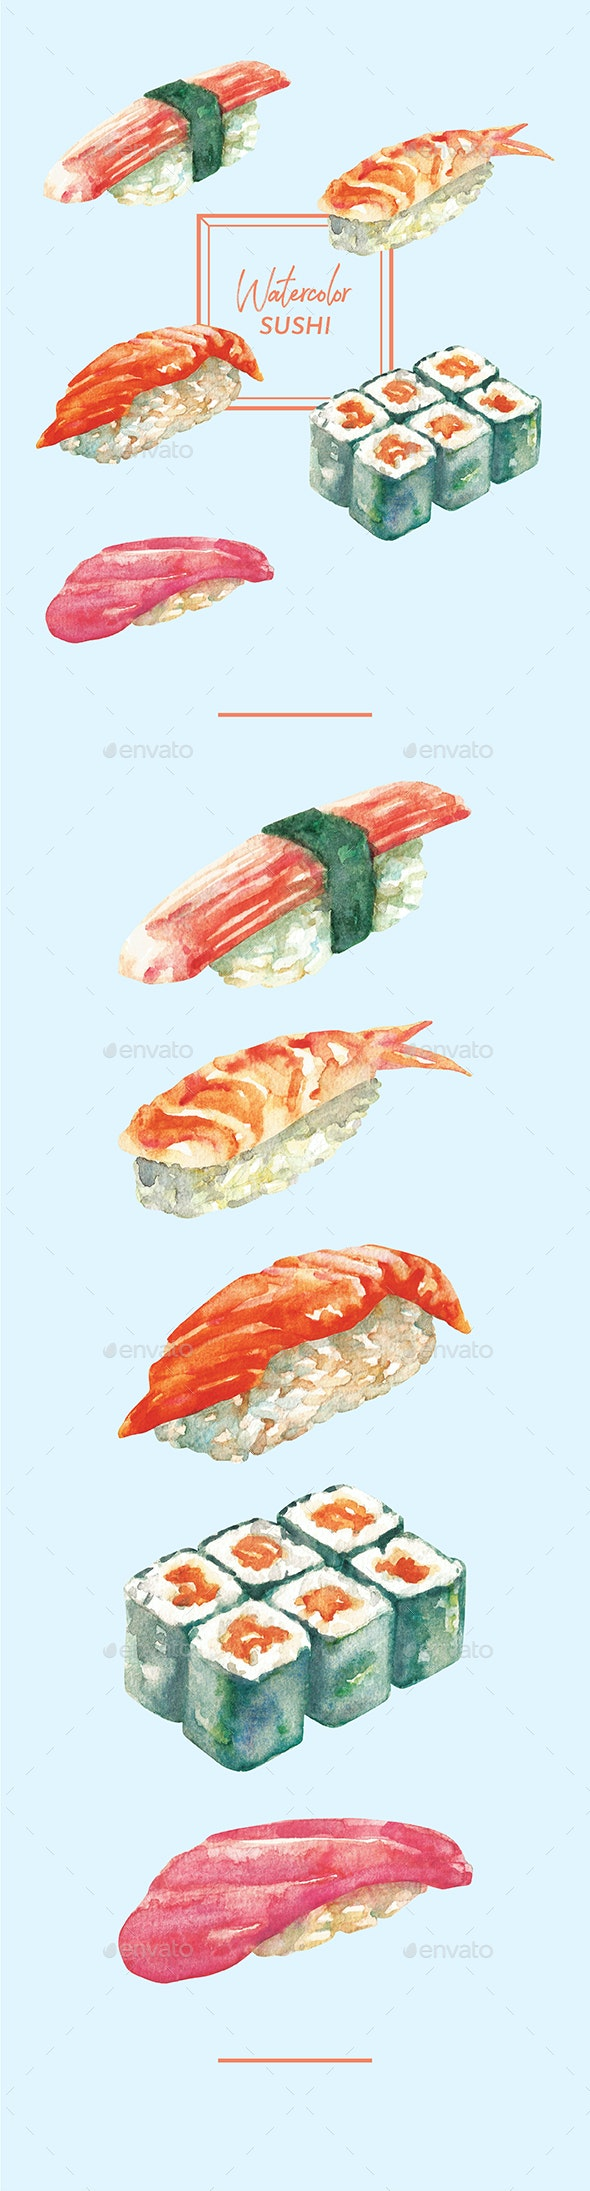 Watercolor Sushi - Objects Illustrations